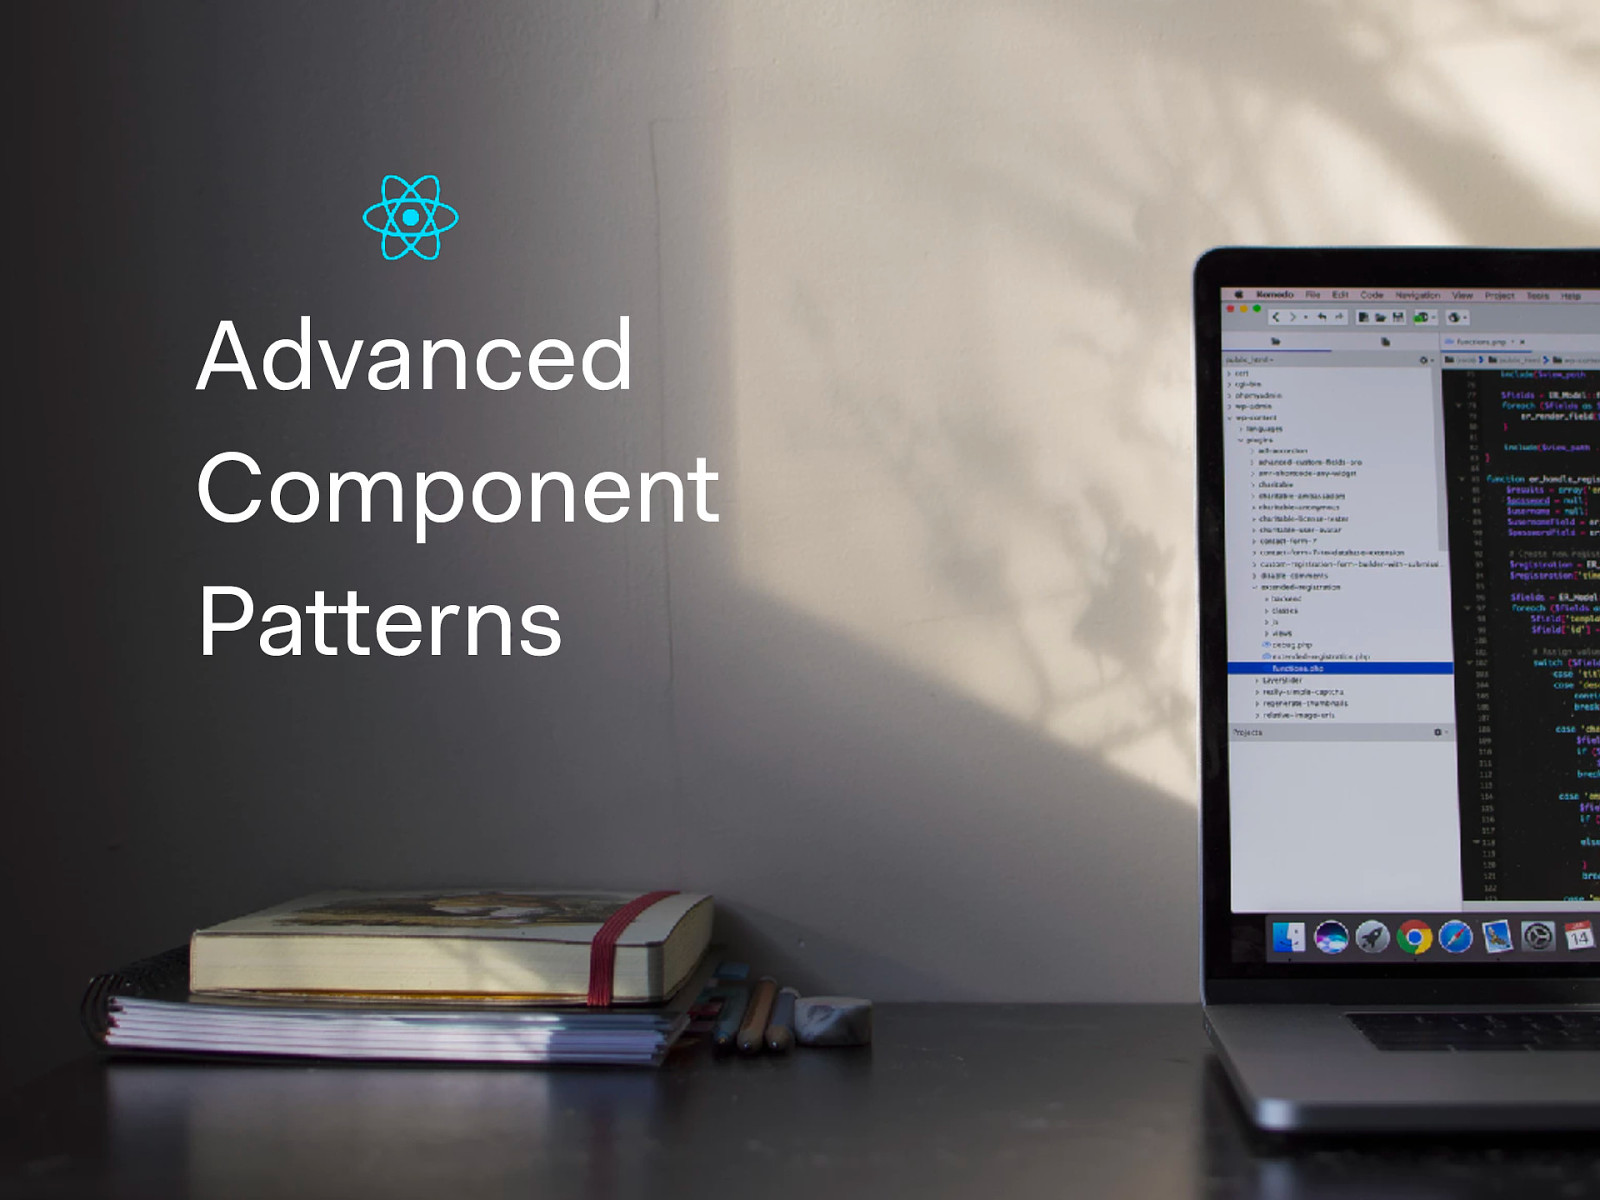 Advanced Component Patterns